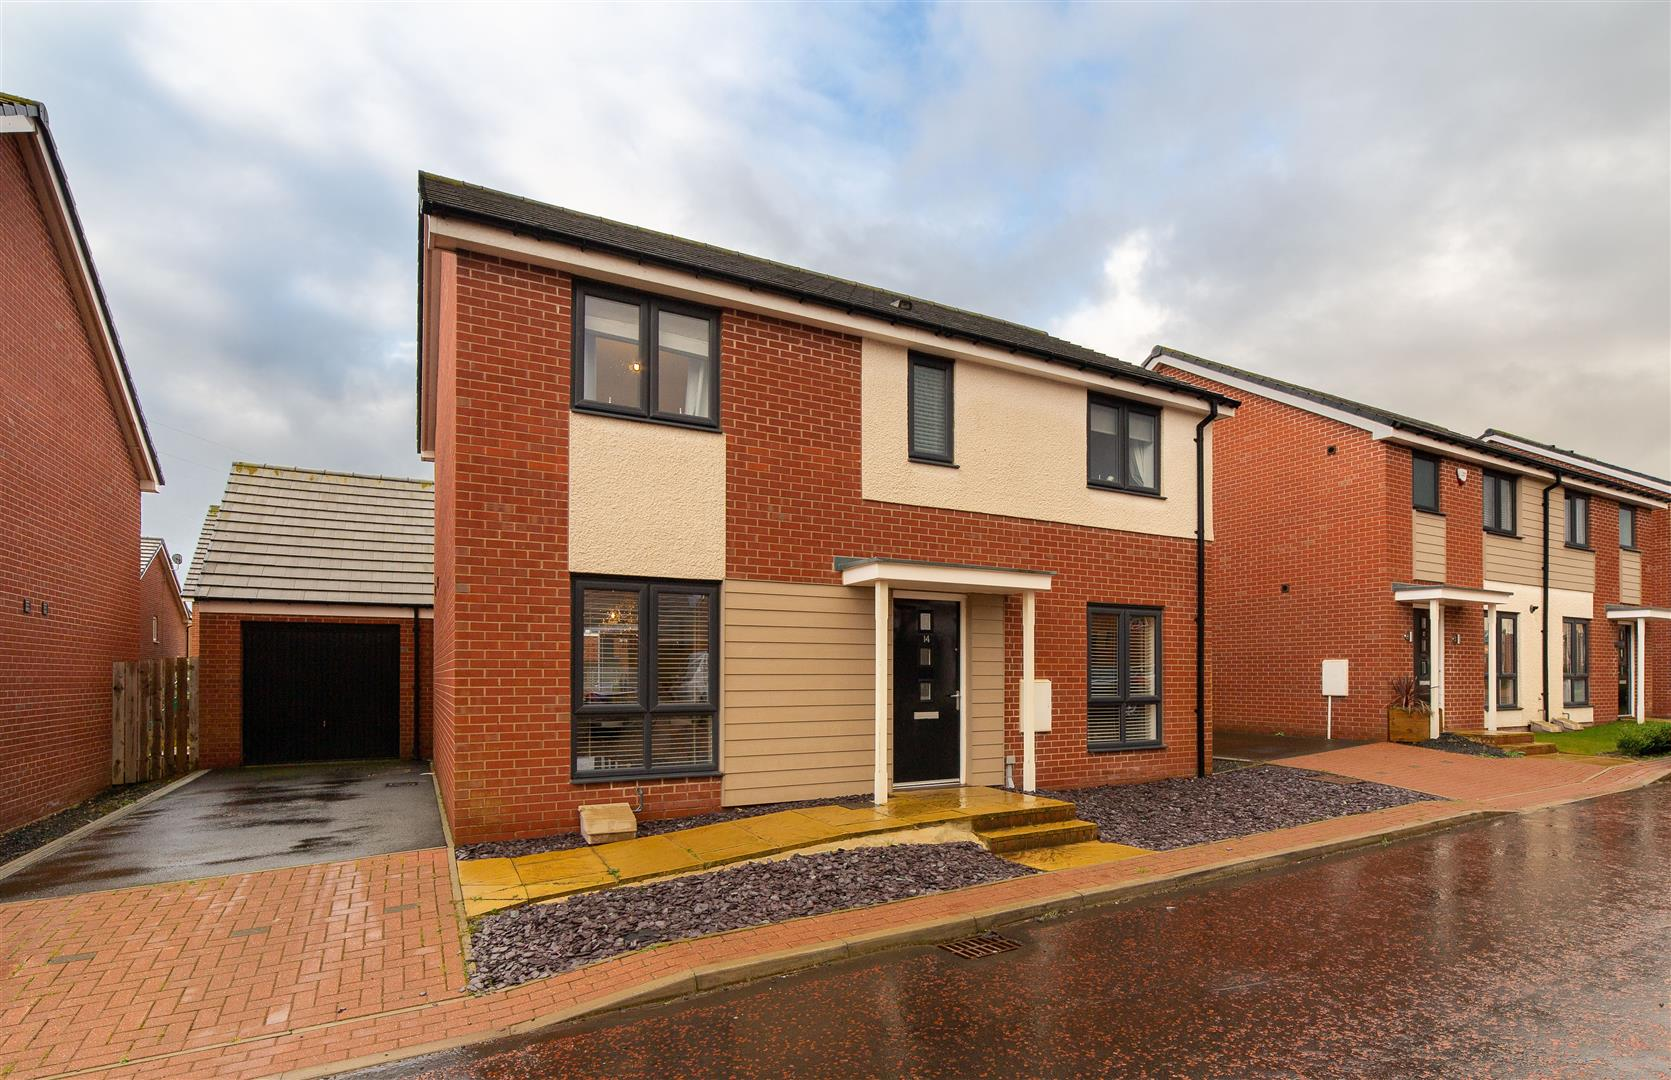 4 bed detached house for sale in Newcastle Upon Tyne, NE13 9DD, NE13